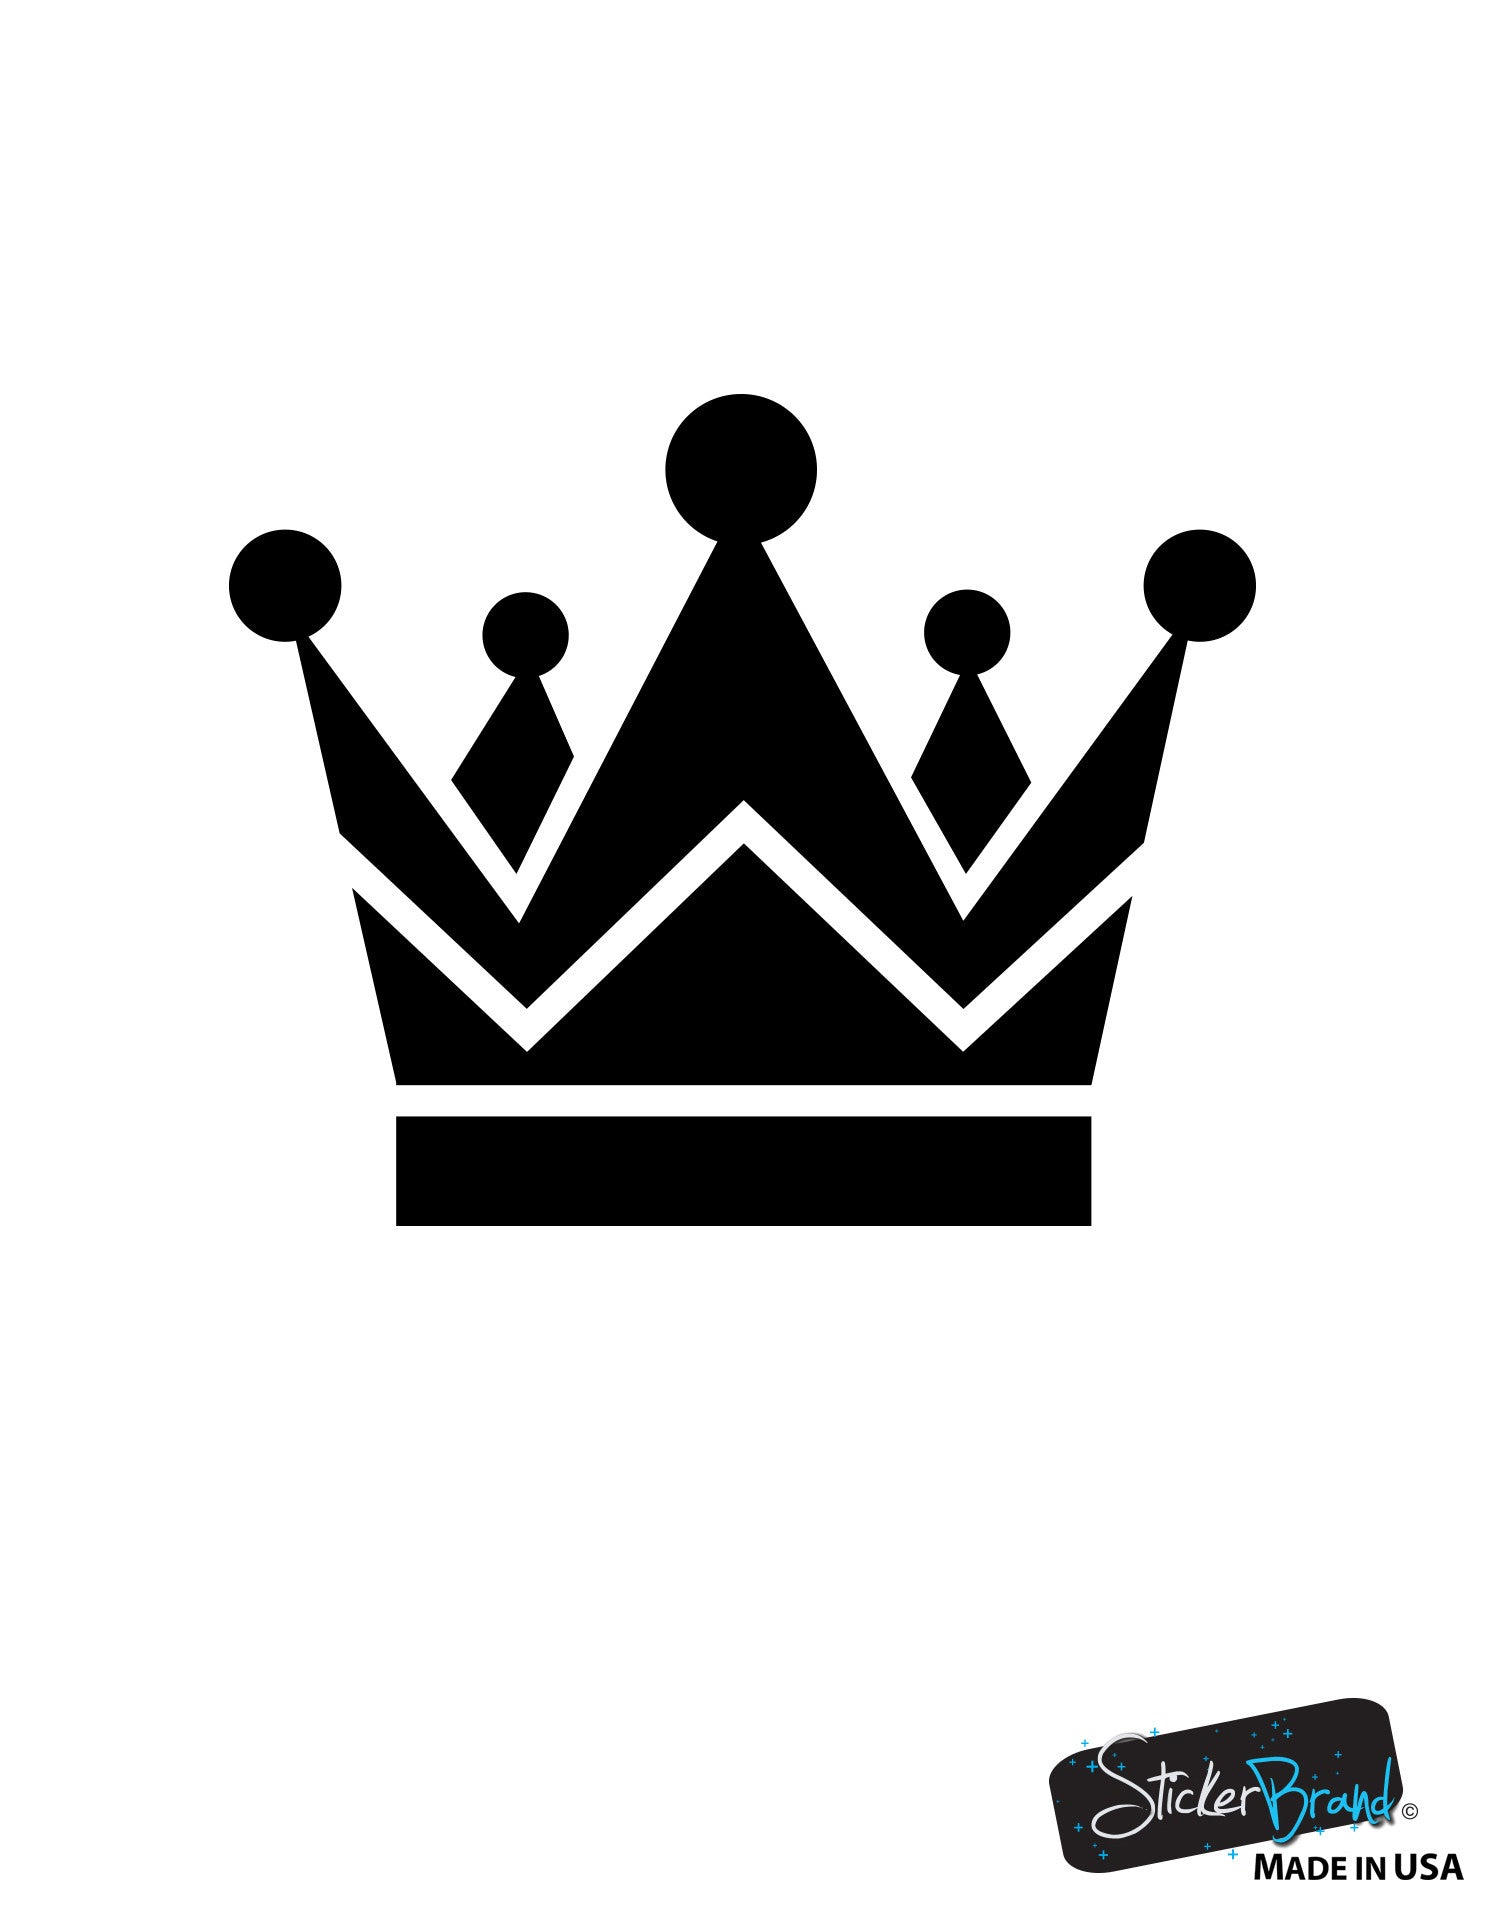 king s crown pattern vinyl wall decal sticker 6076